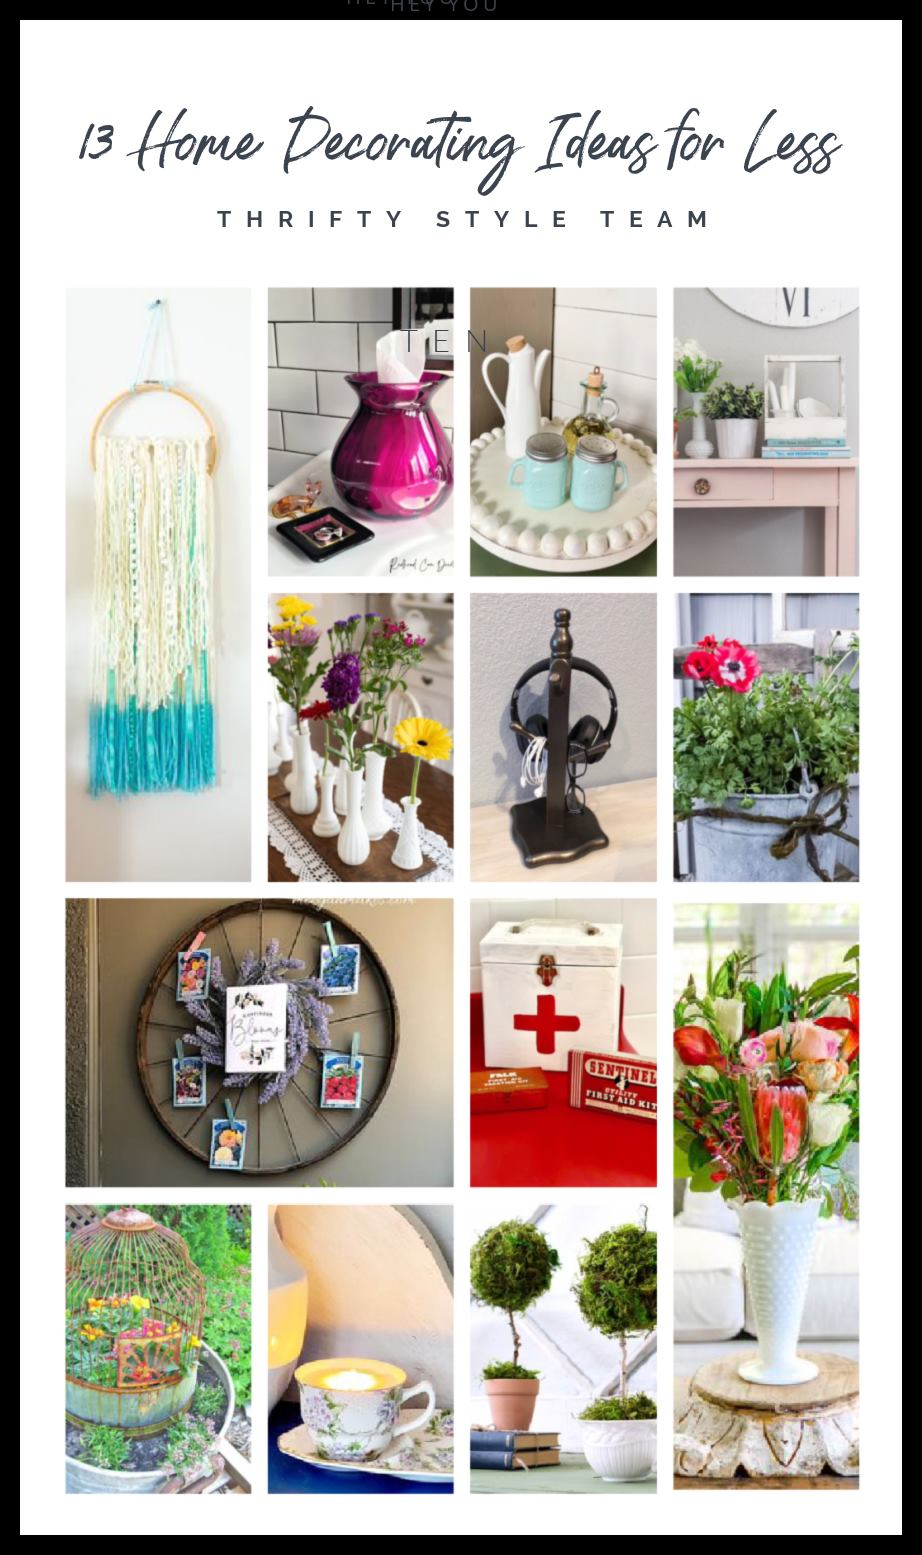 13 Home Decorating Ideas graphic